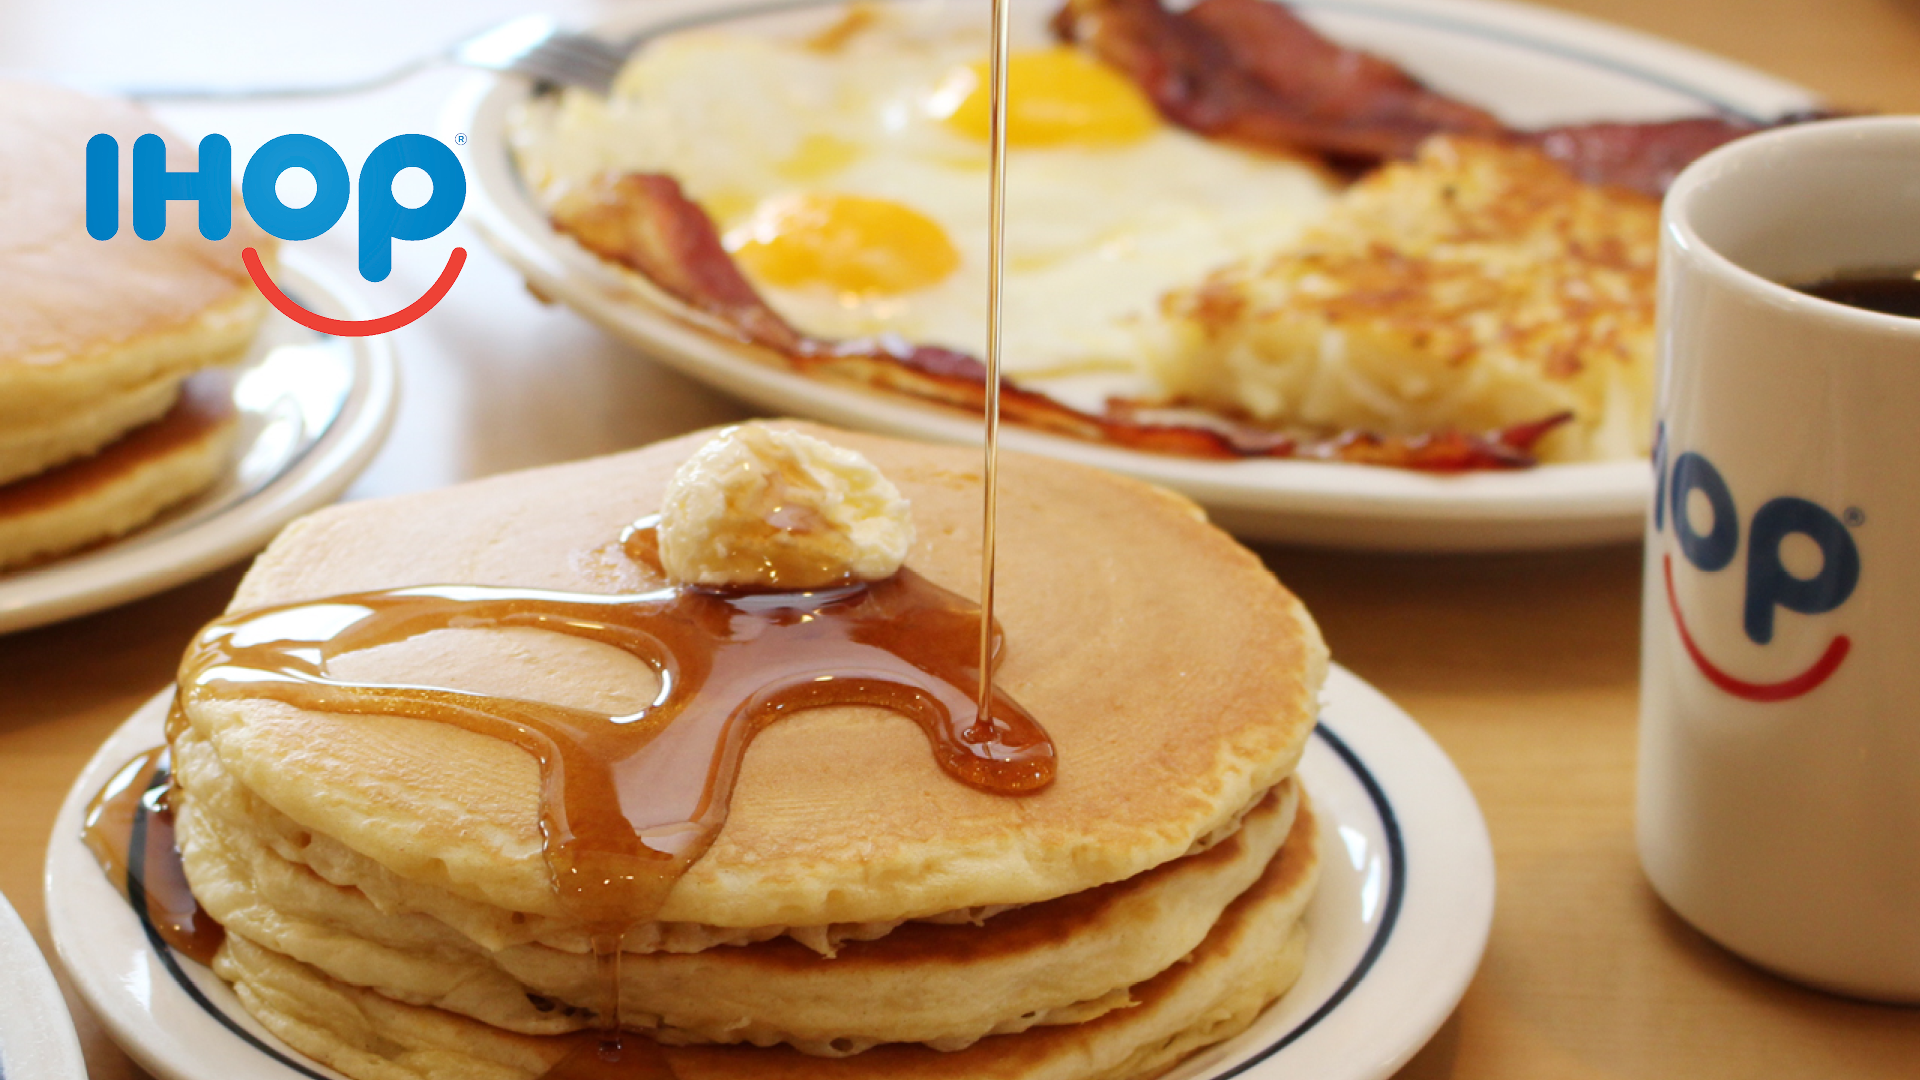 ihop open hours